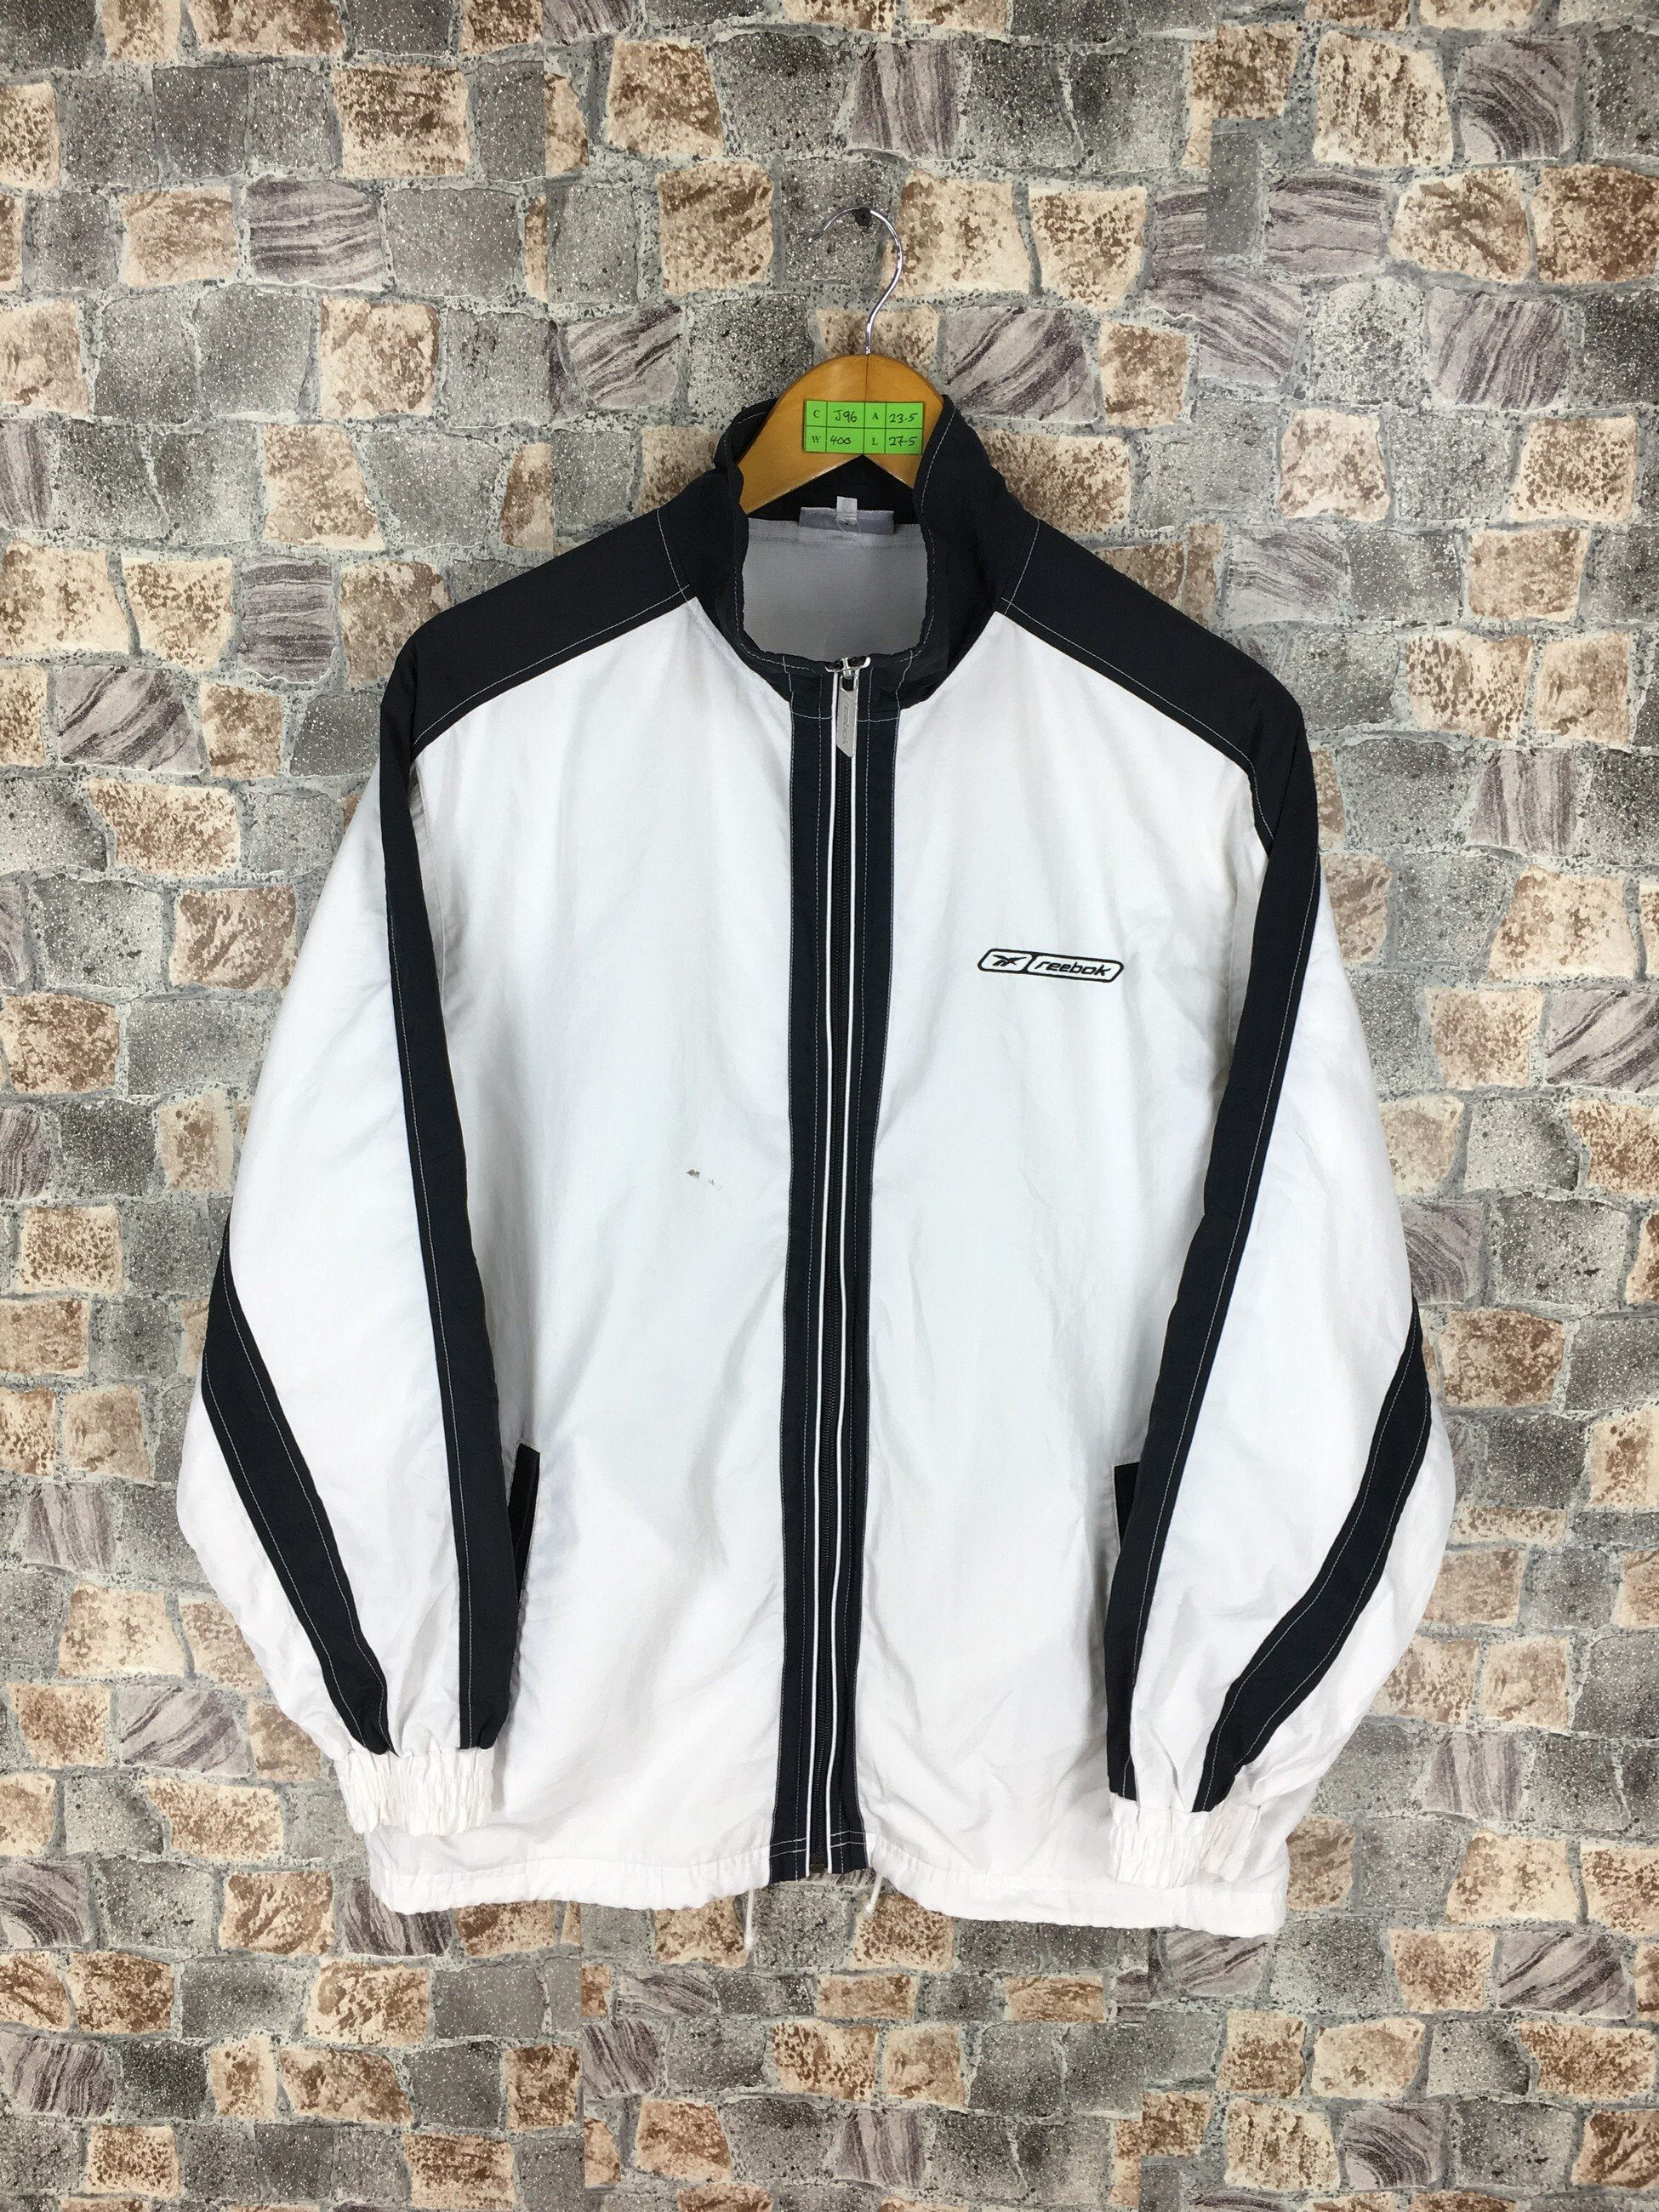 Excited To Share The Latest Addition To My Etsy Shop Reebok Windbreaker Jacket Medium Vintage 90s Reebok Sports In 2021 Windbreaker Jacket Activewear Jackets Jackets [ 2600 x 1950 Pixel ]